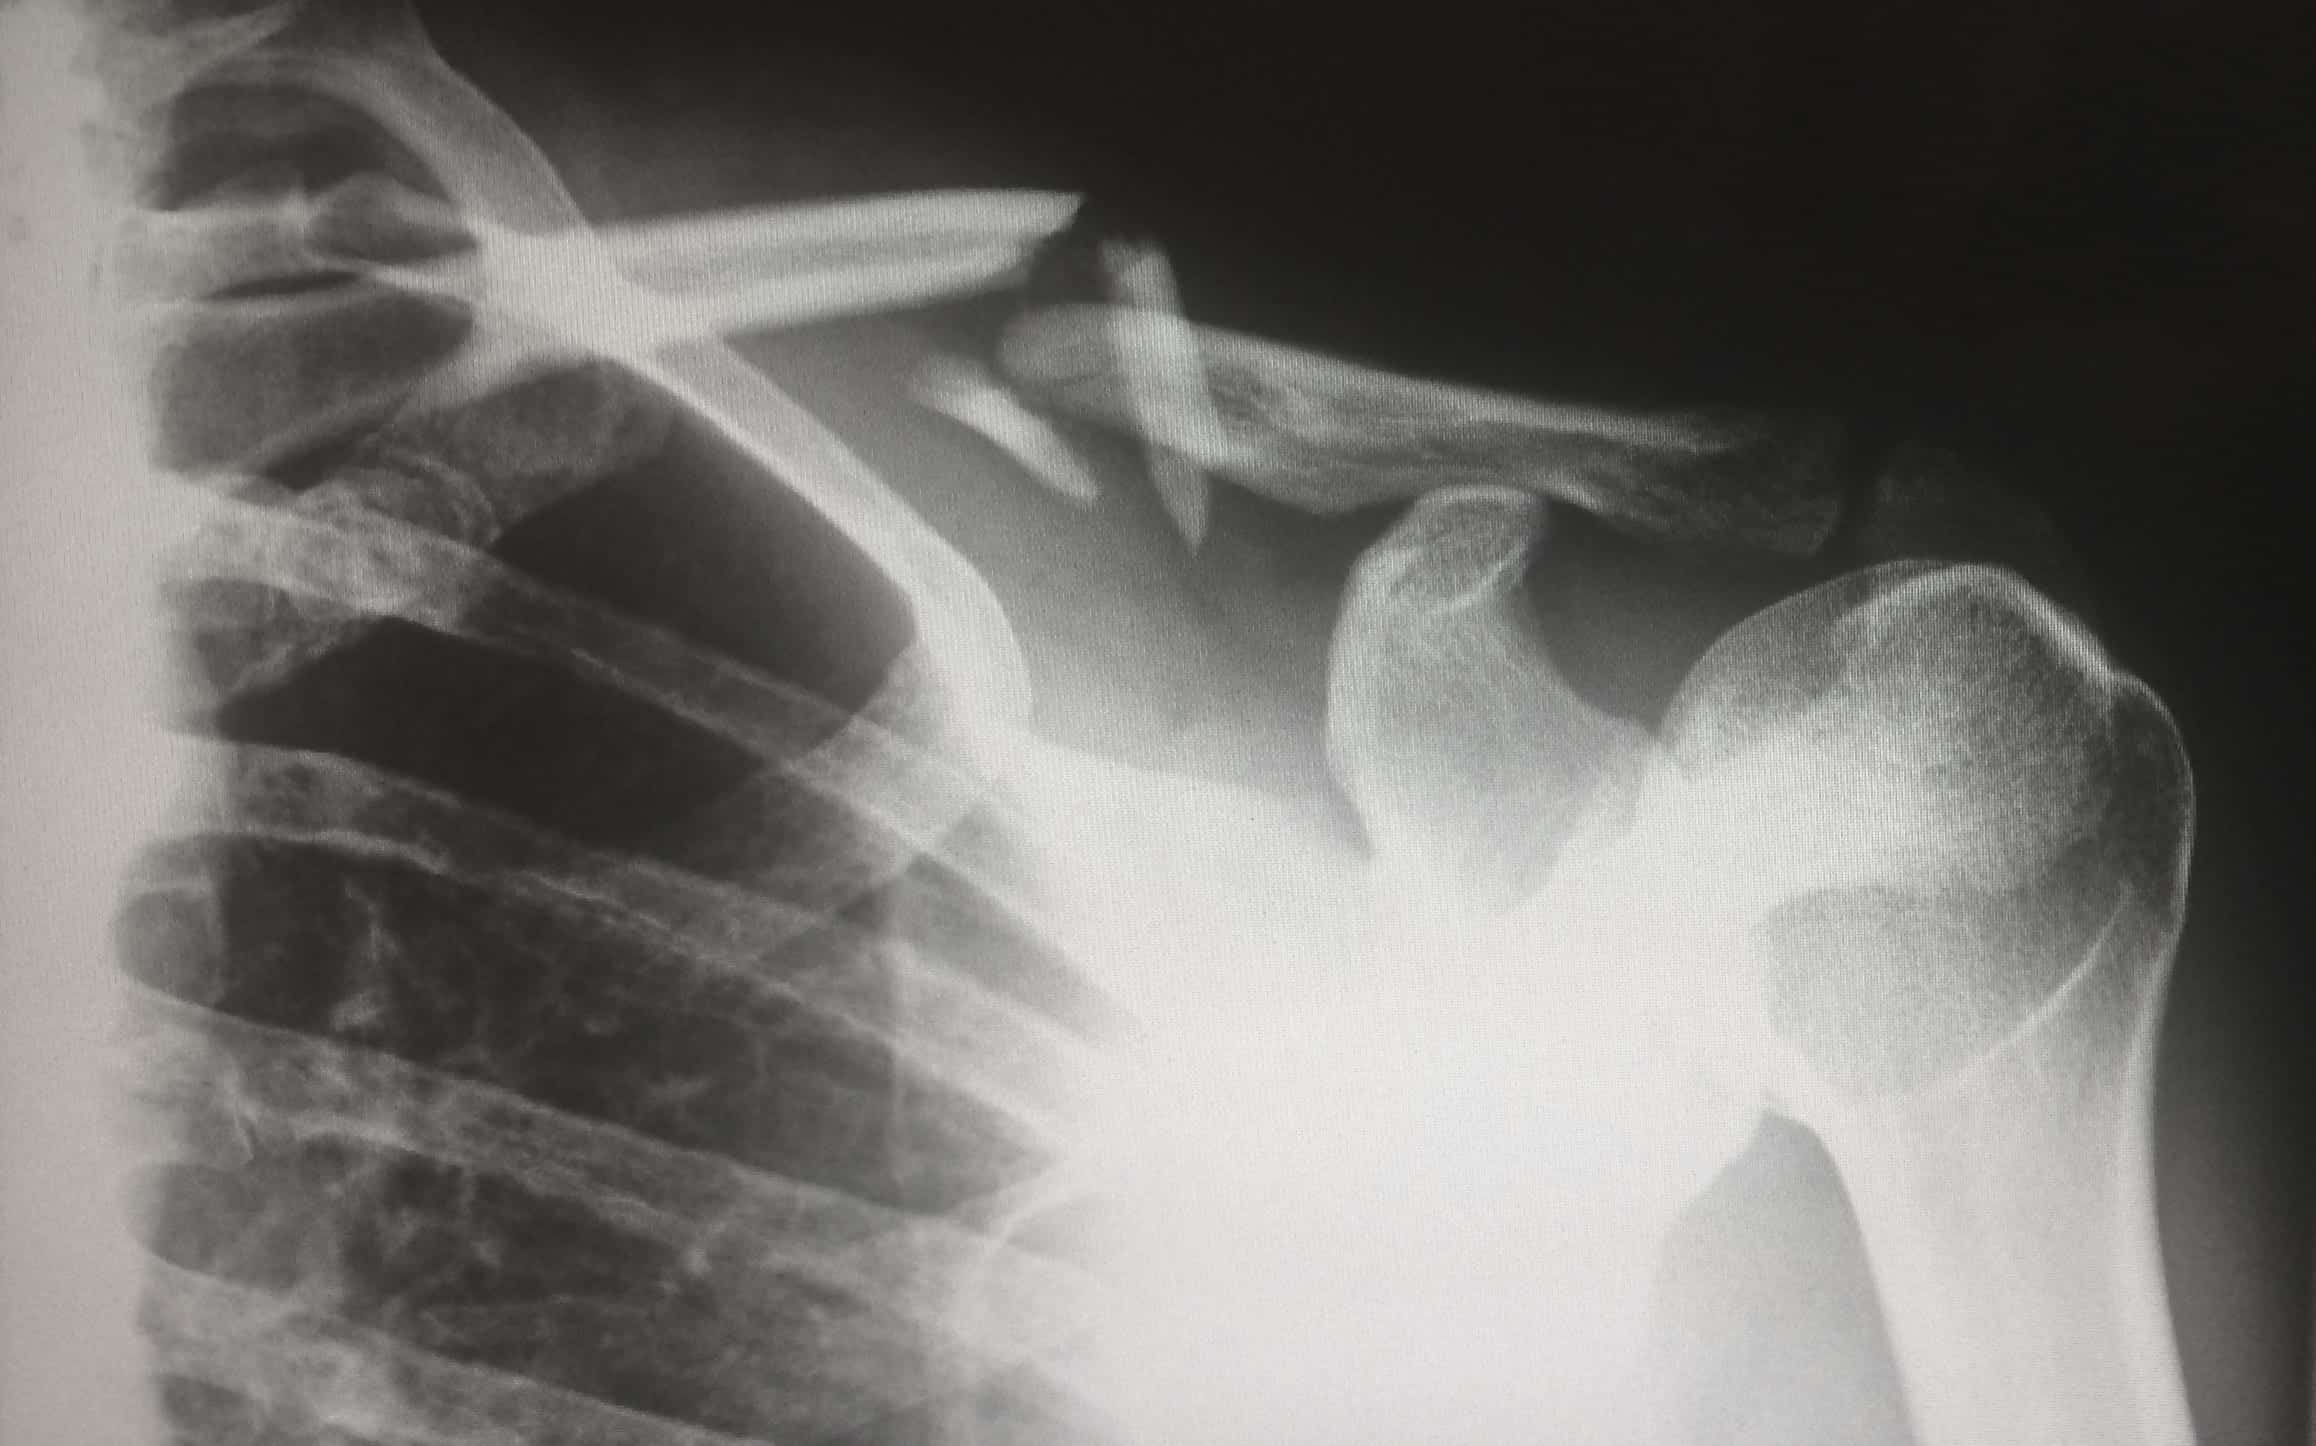 X-ray of person with broken collarbone; image by Harlie Raethel, via unsplash.com.